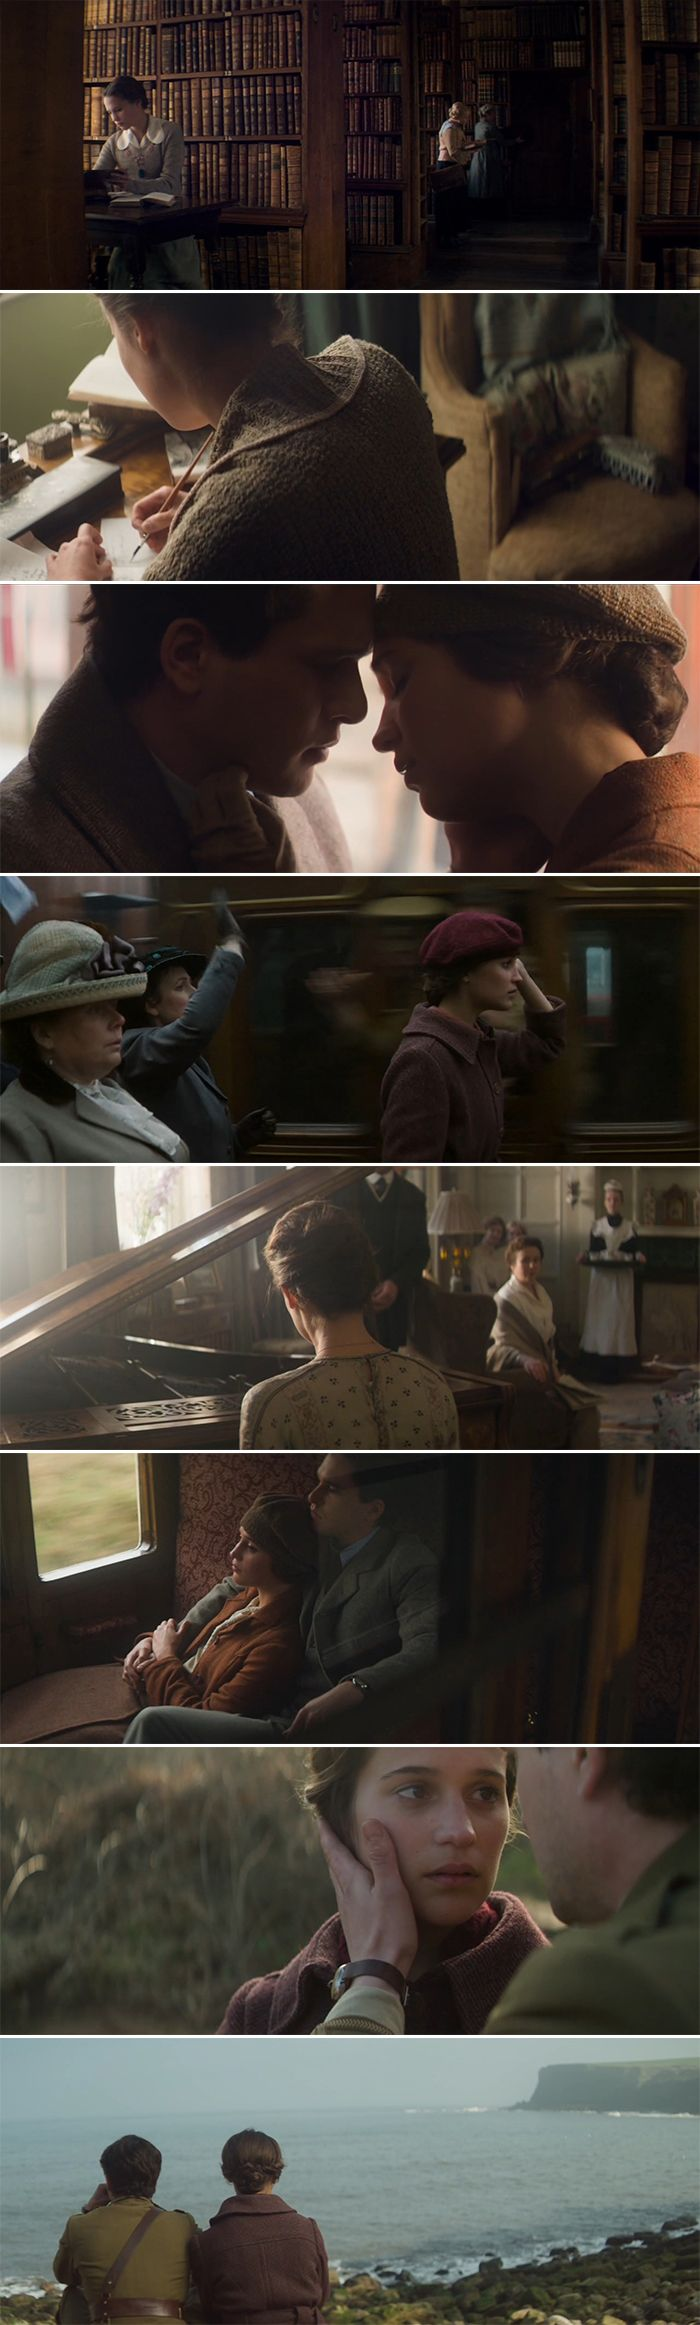 "Absolutely incredible cinematography in ""The testament of youth"". Each frame feels like a poem."